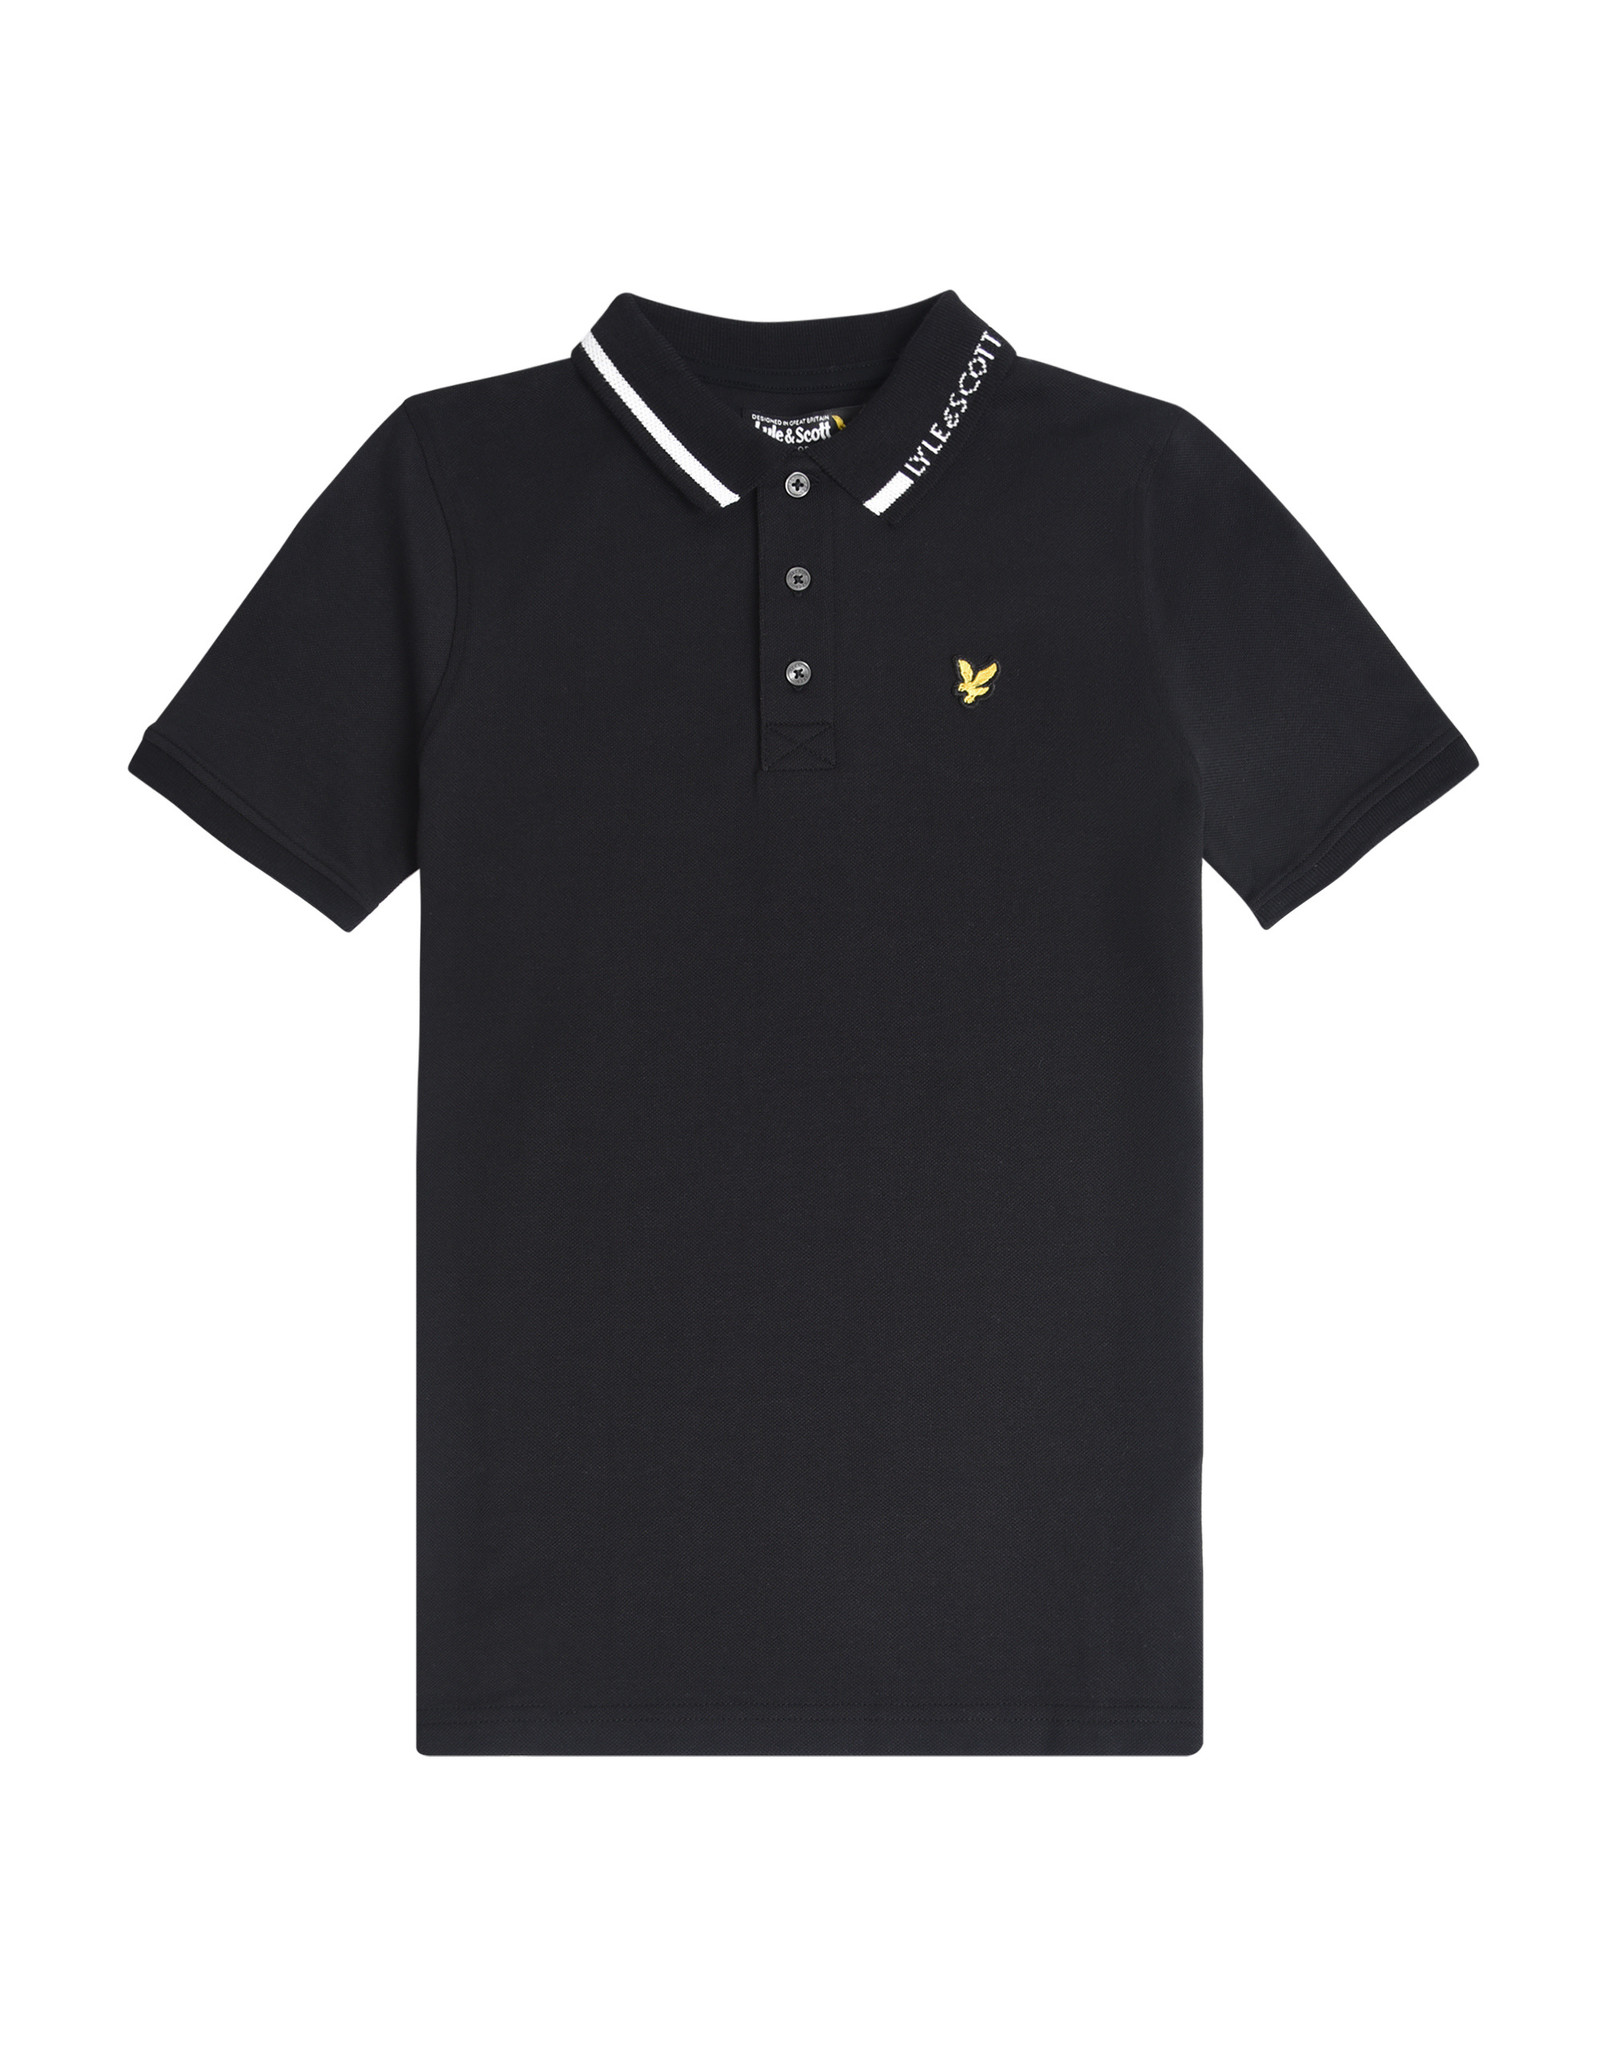 Lyle & Scott BOYS BRANDED COLLAR POLO 023 BLACK